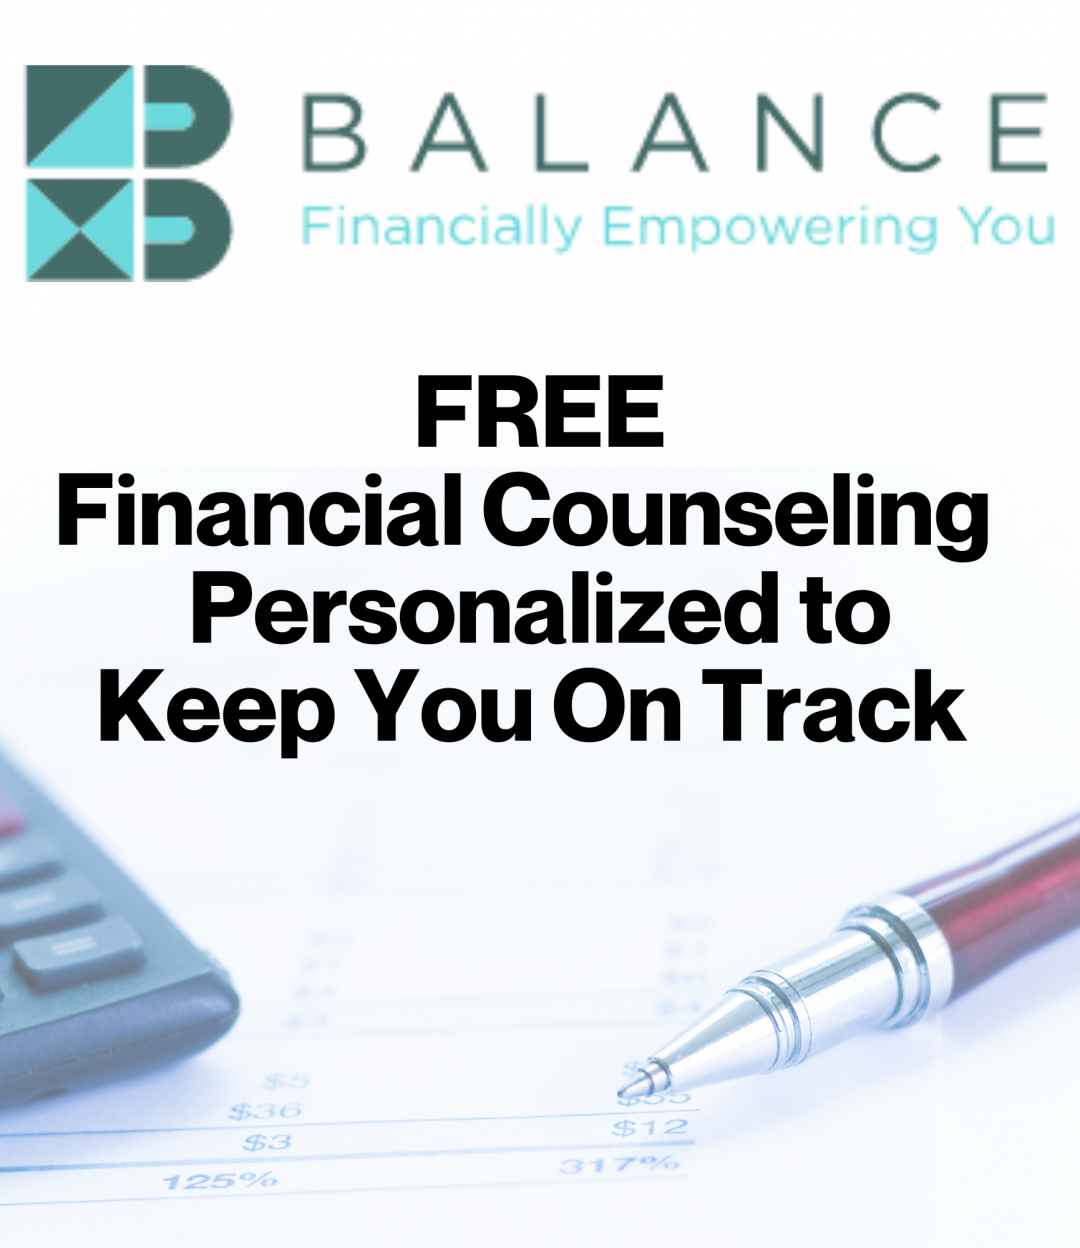 Financial Counseling for FREE Personalized to Keep You on Track Click Here to Get Started